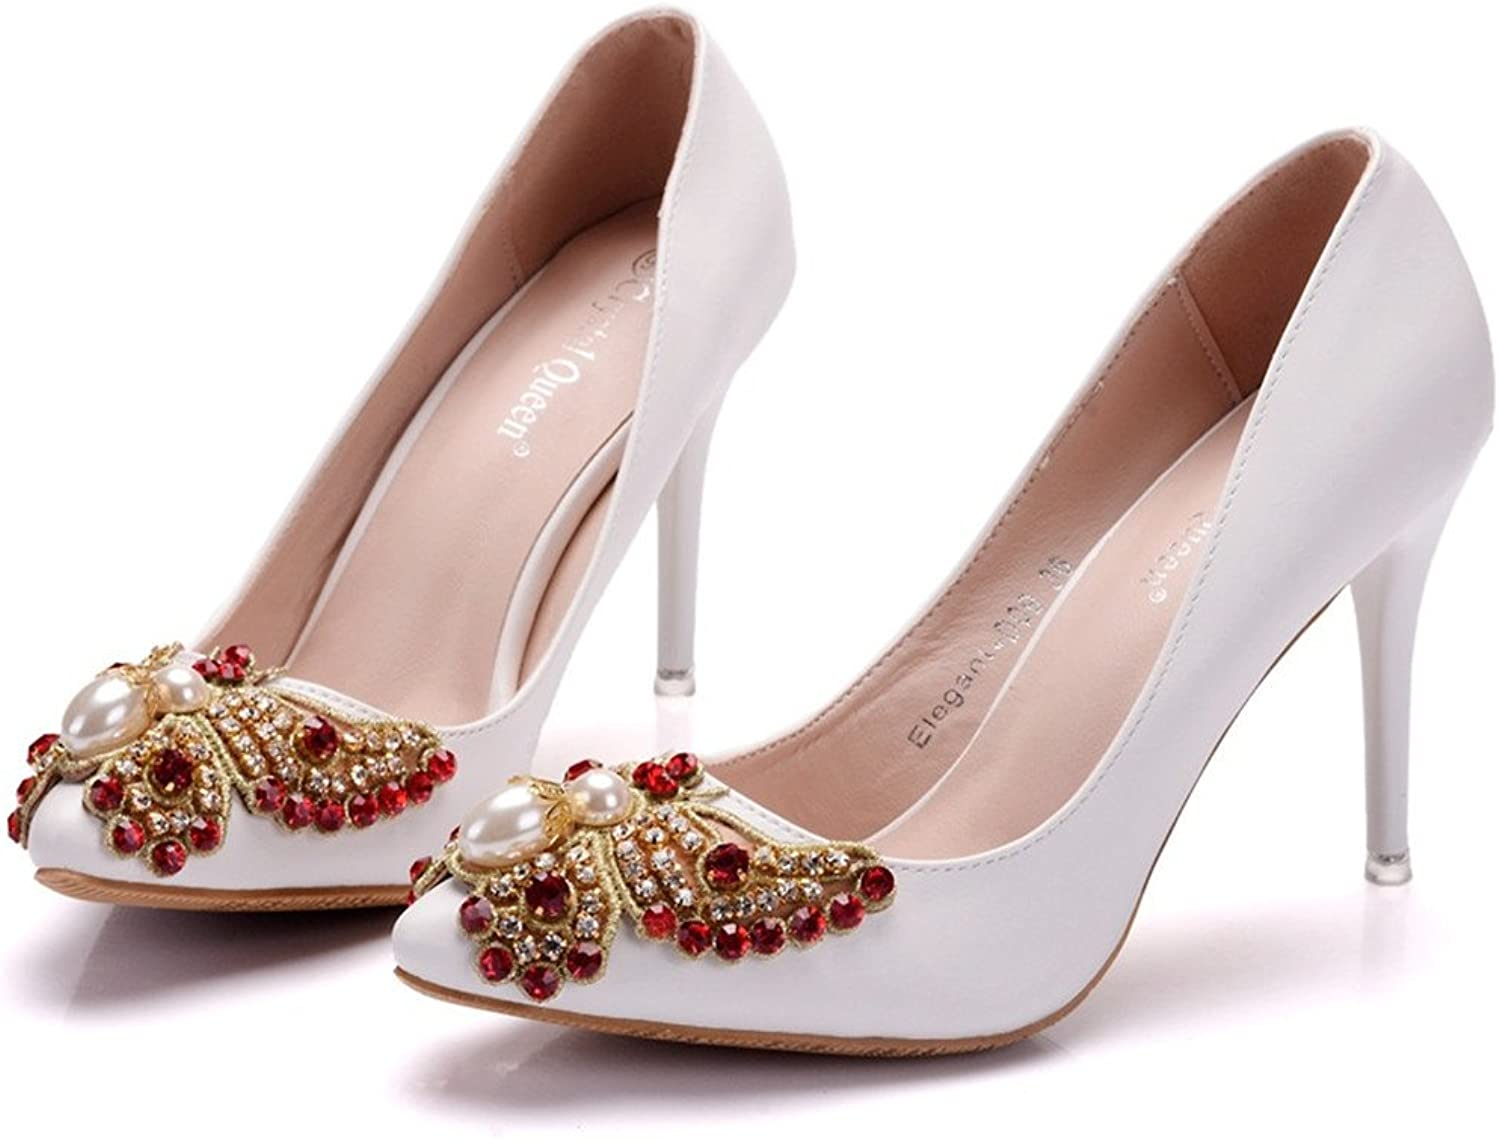 HYP Wedding Women shoes Wedding shoes Women Pumps Closed Toe Wedding Party Court shoes Bridesmaid Bridal shoes Tip with fine Crystal